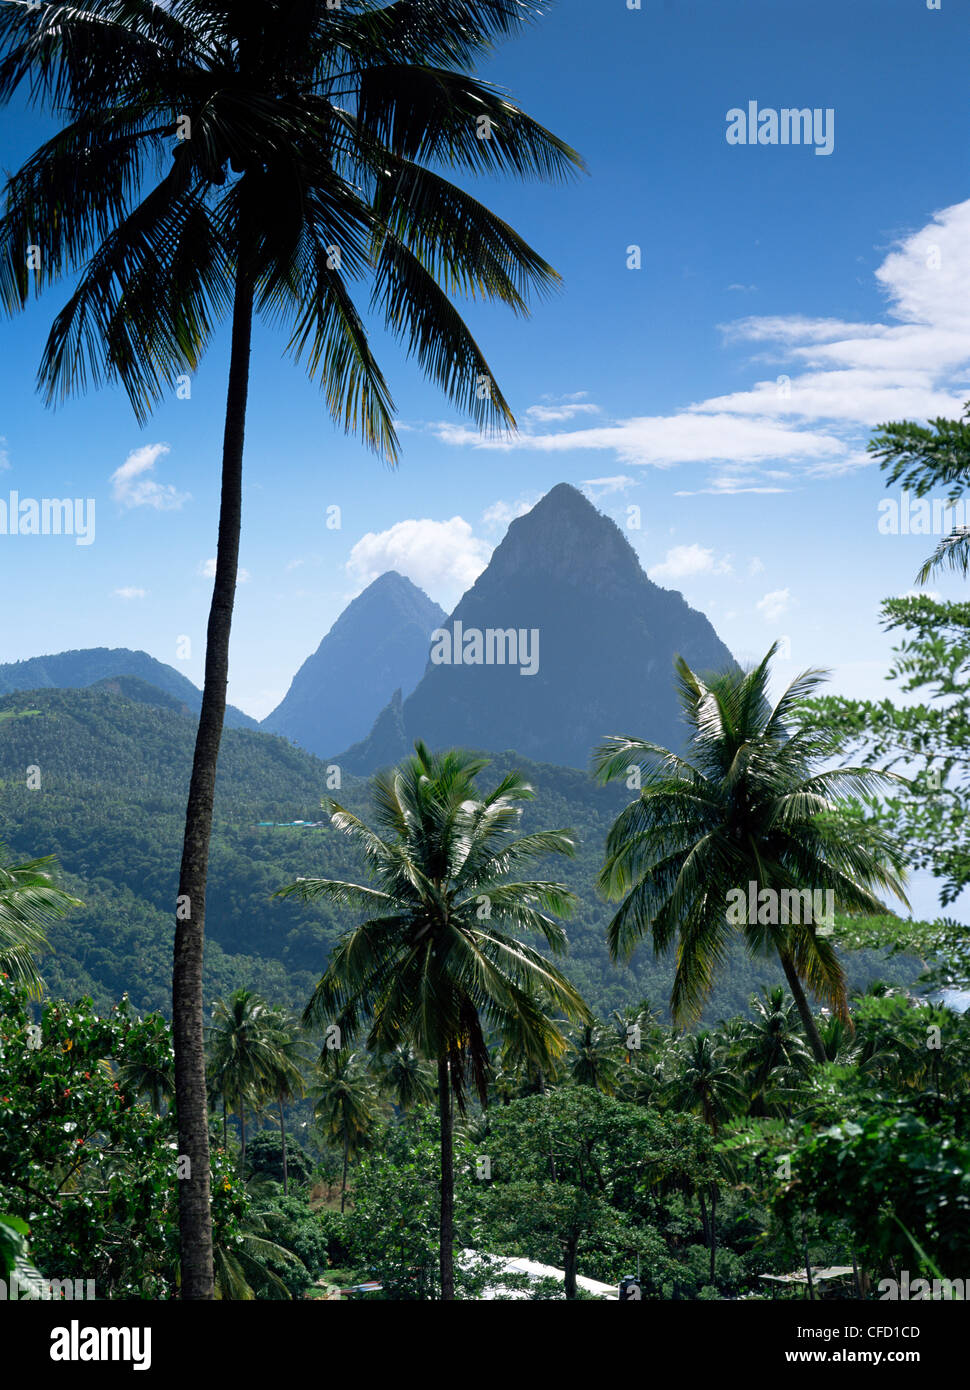 The Pitons, St. Lucia, Windward Islands, West Indies, Caribbean, Central America - Stock Image